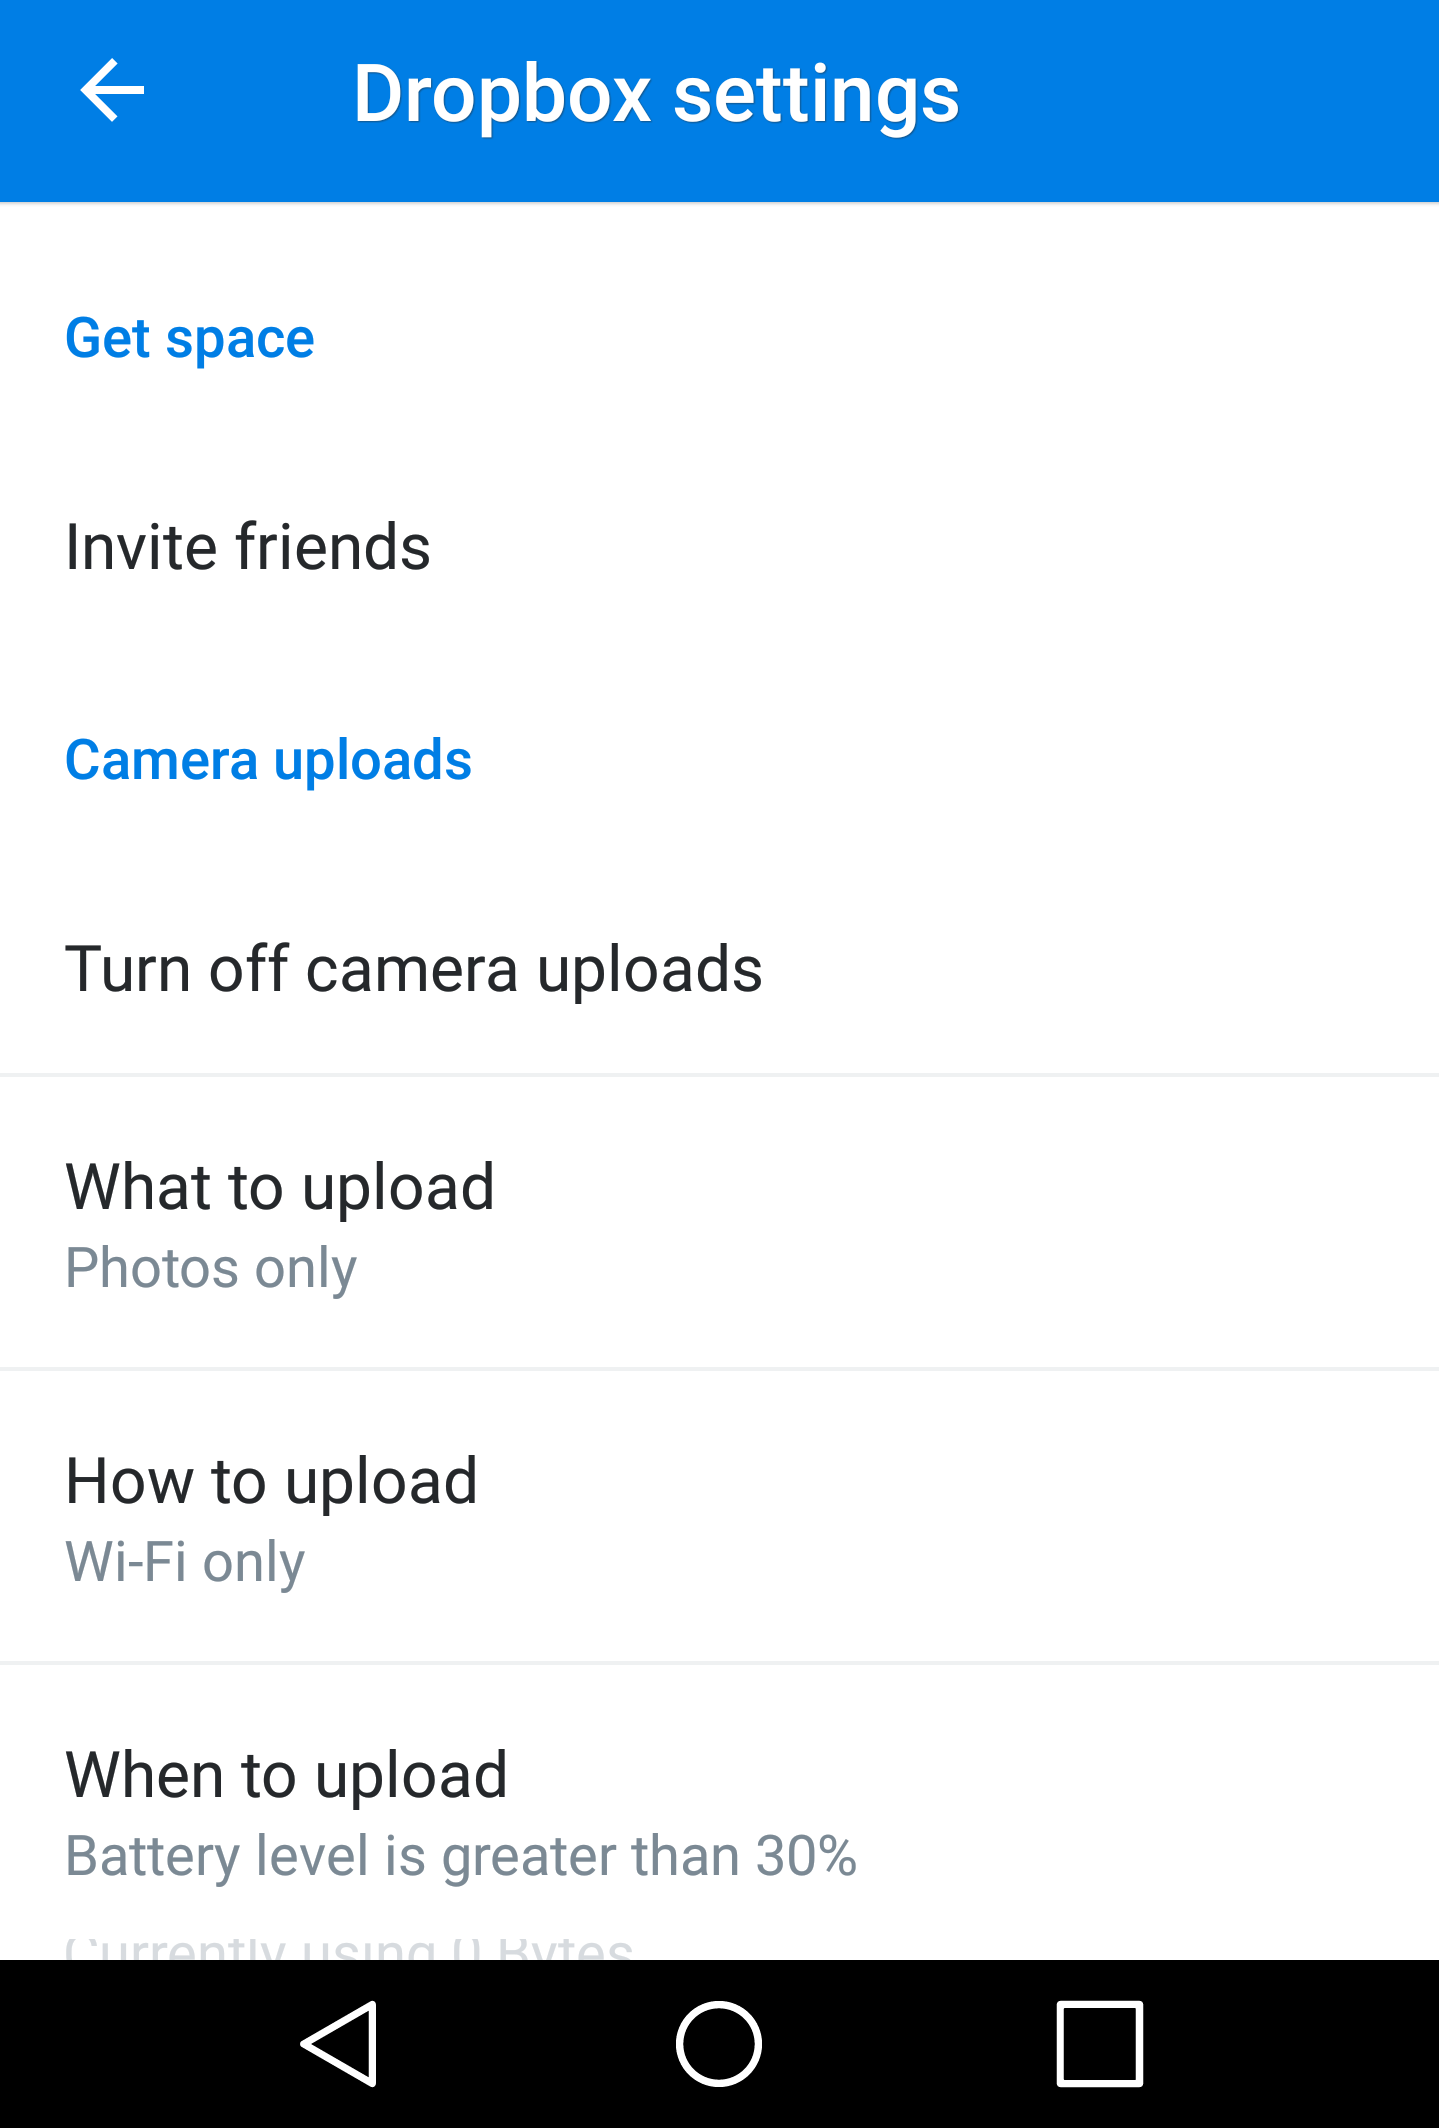 change settings android dropbox auto-upload photos